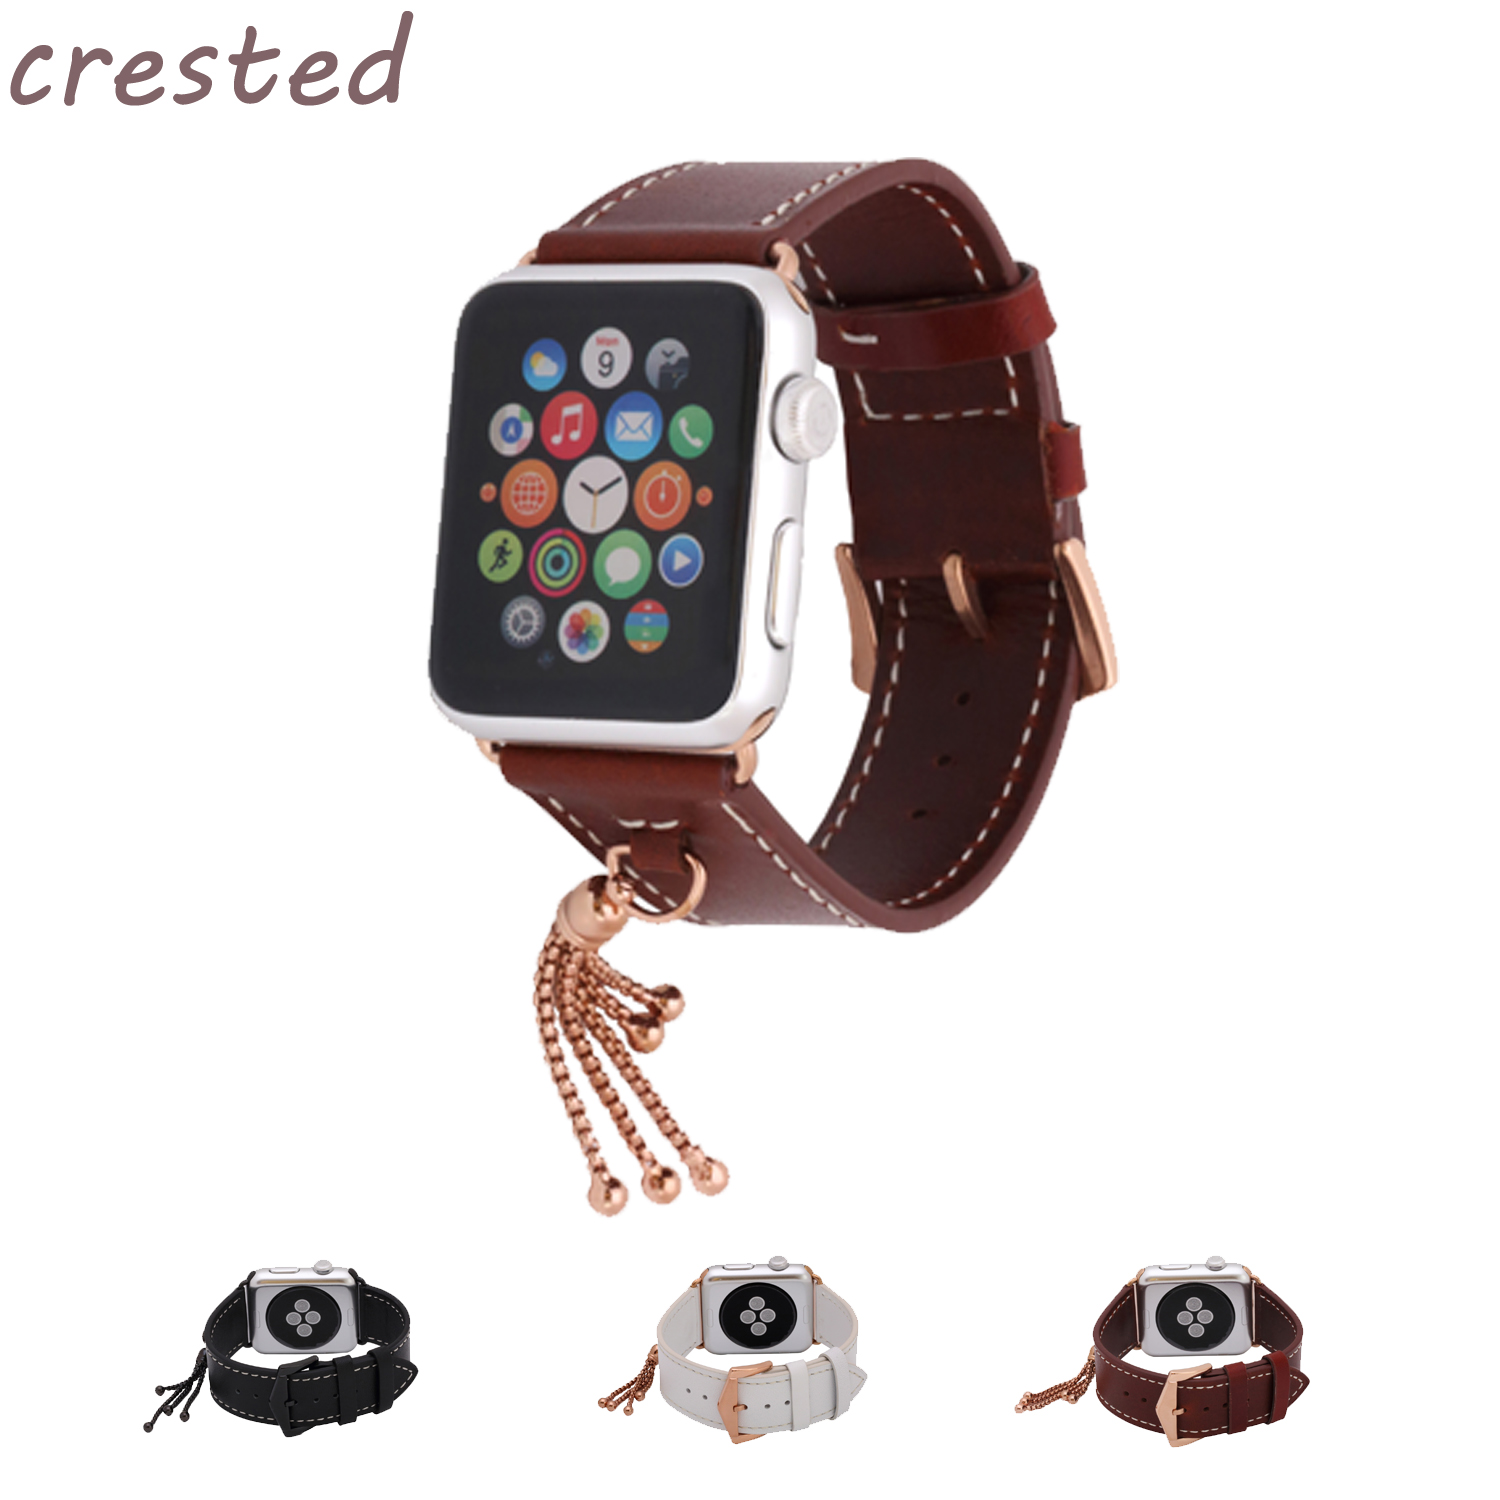 купить CRESTED genuine leather strap for apple watch band 42mm/38 Ornaments bracelet belt leather band for iwatch serise 1 2 3 strap по цене 780.2 рублей